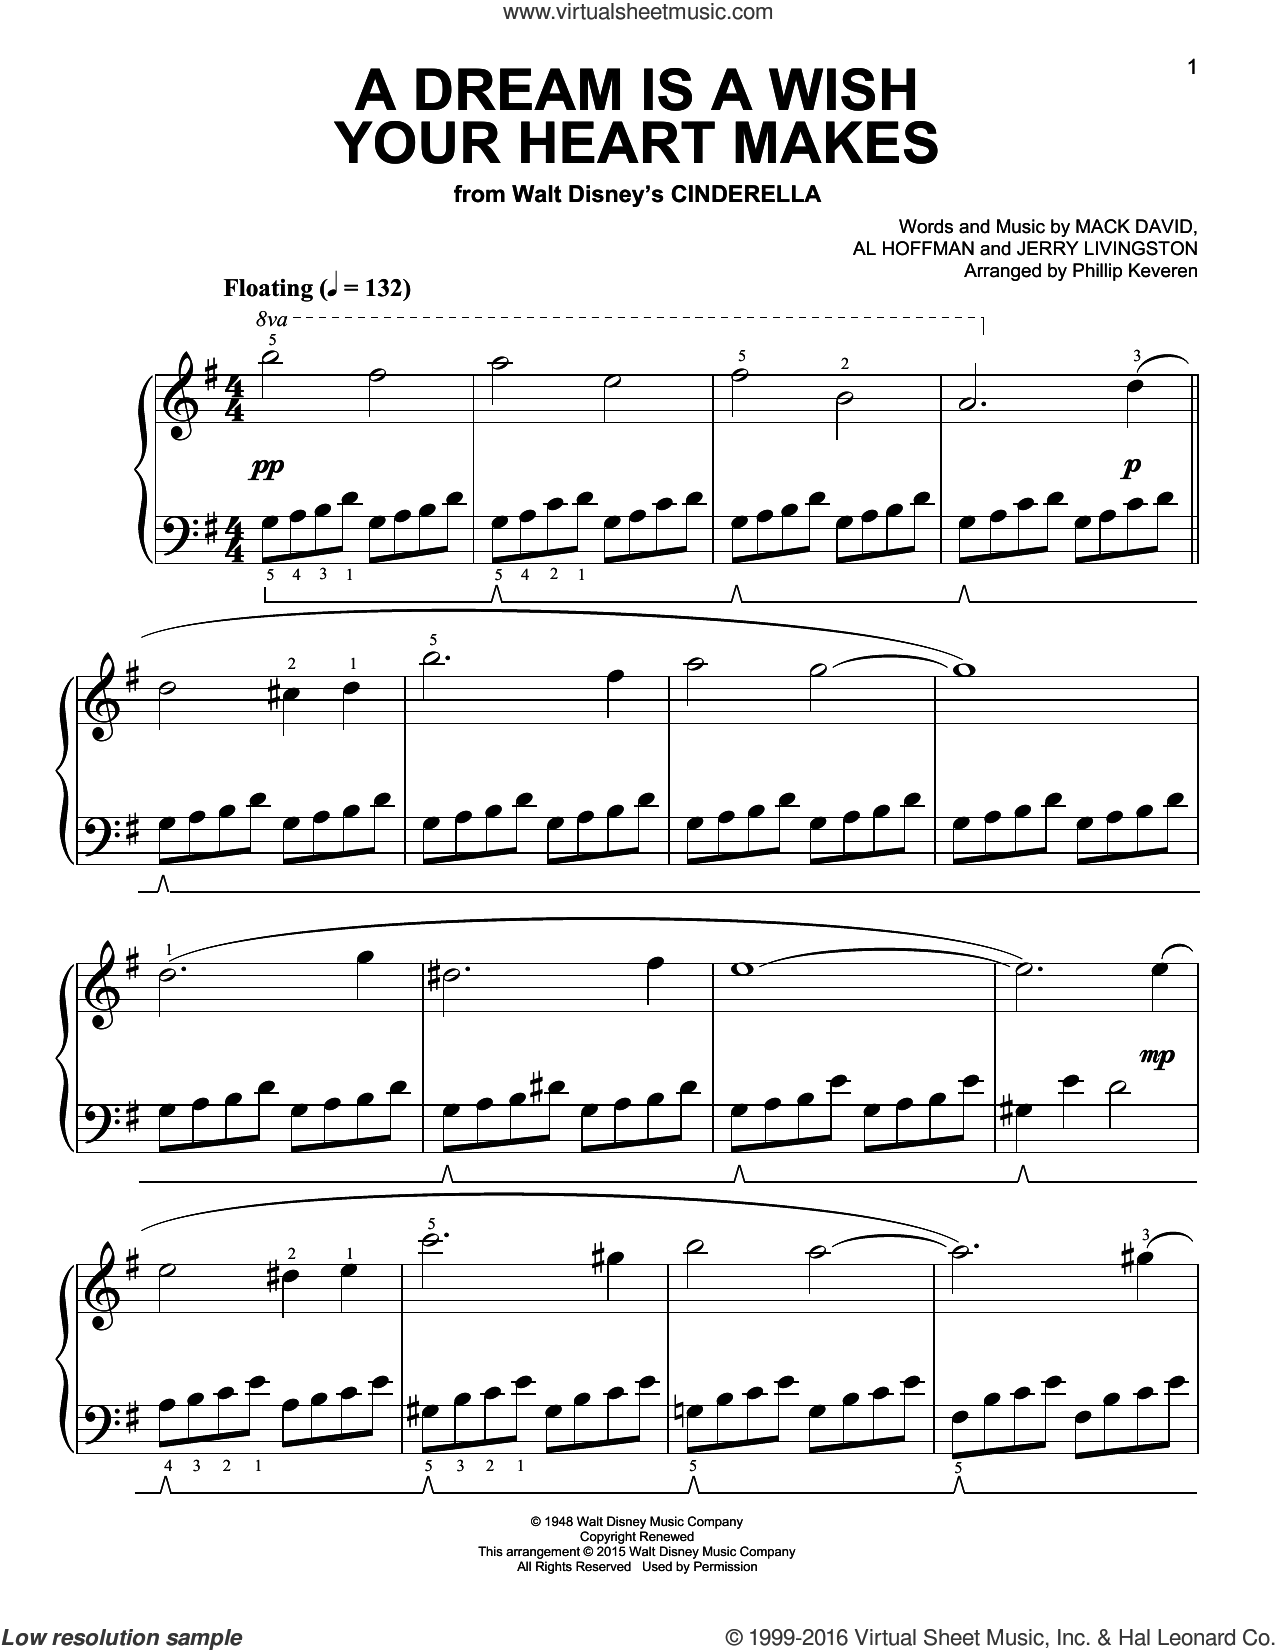 A Dream Is A Wish Your Heart Makes sheet music for piano solo by Al Hoffman, Phillip Keveren, Linda Ronstadt, Jerry Livingston and Mack David, easy skill level